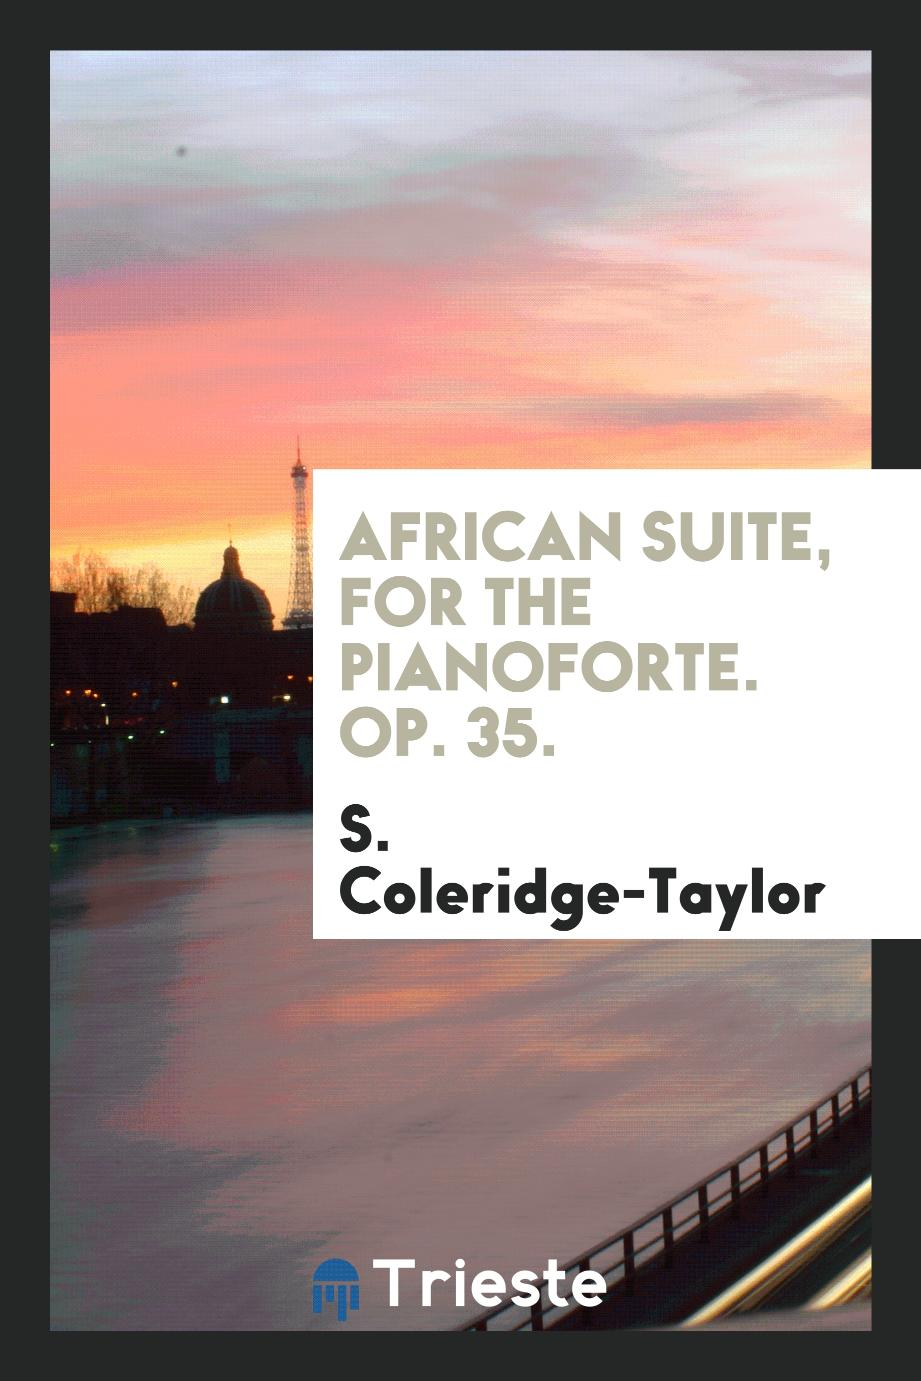 African suite, for the pianoforte. Op. 35.